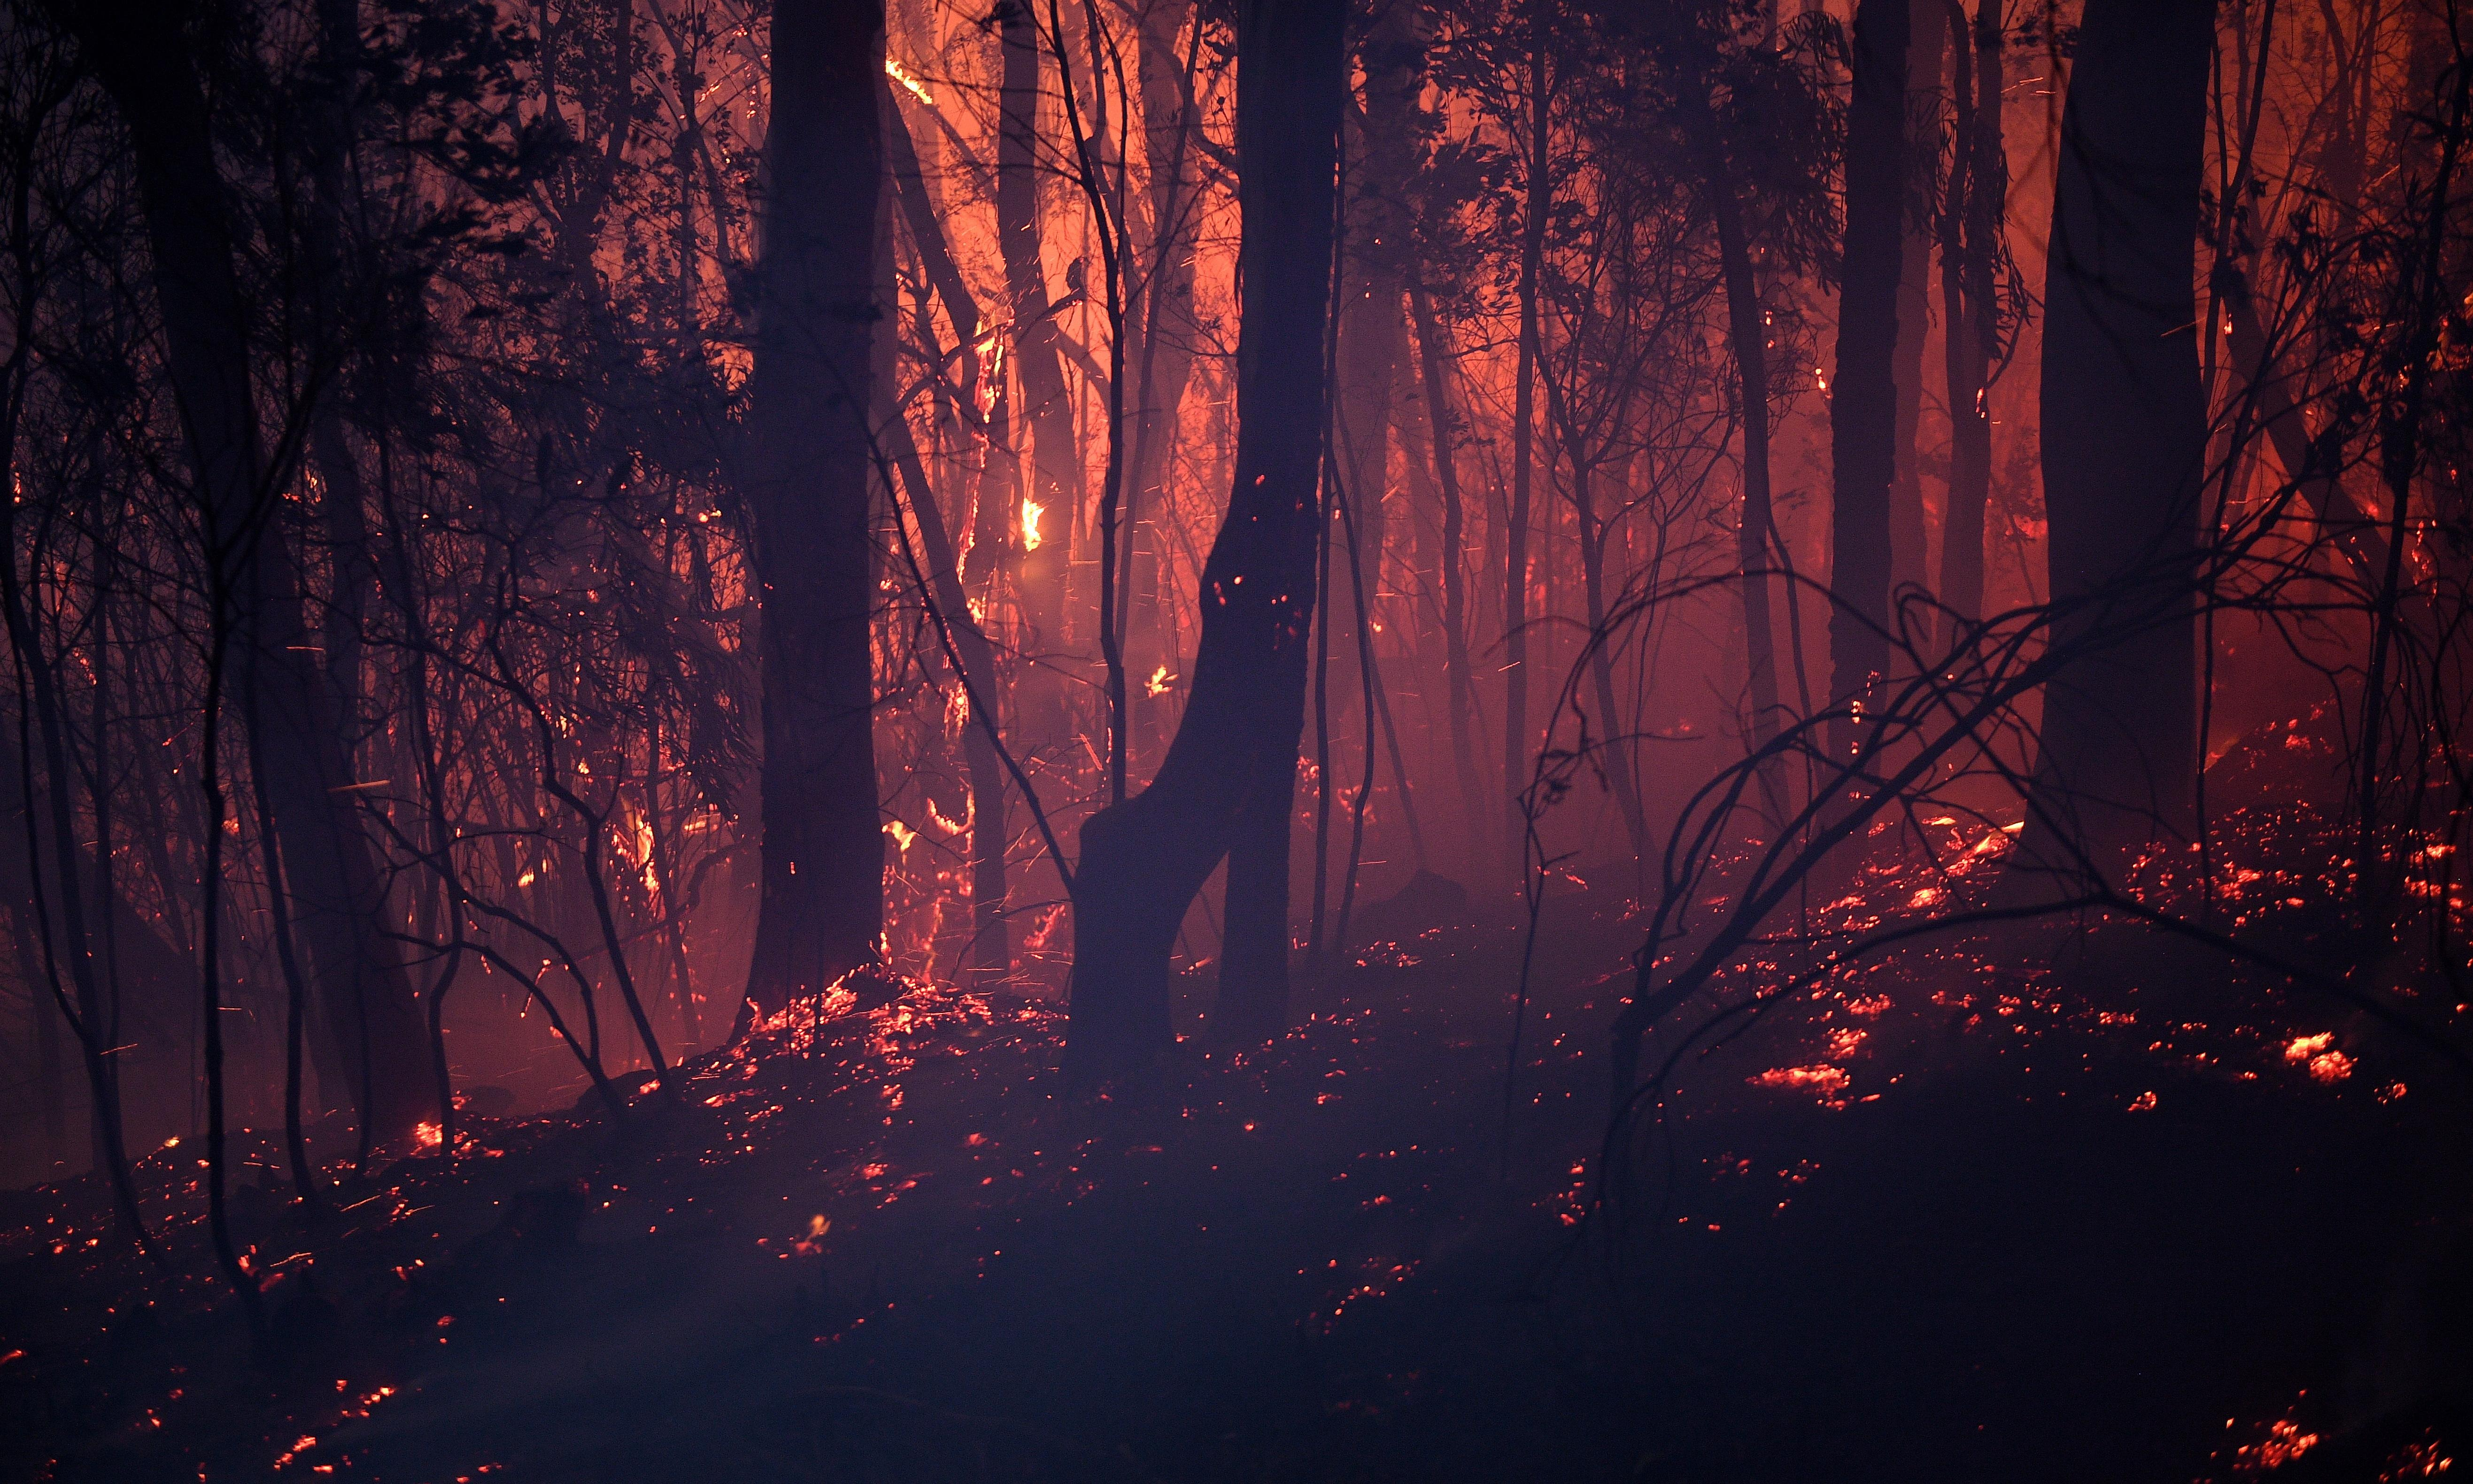 NSW and Queensland bushfires: at least 100 homes destroyed, three people missing